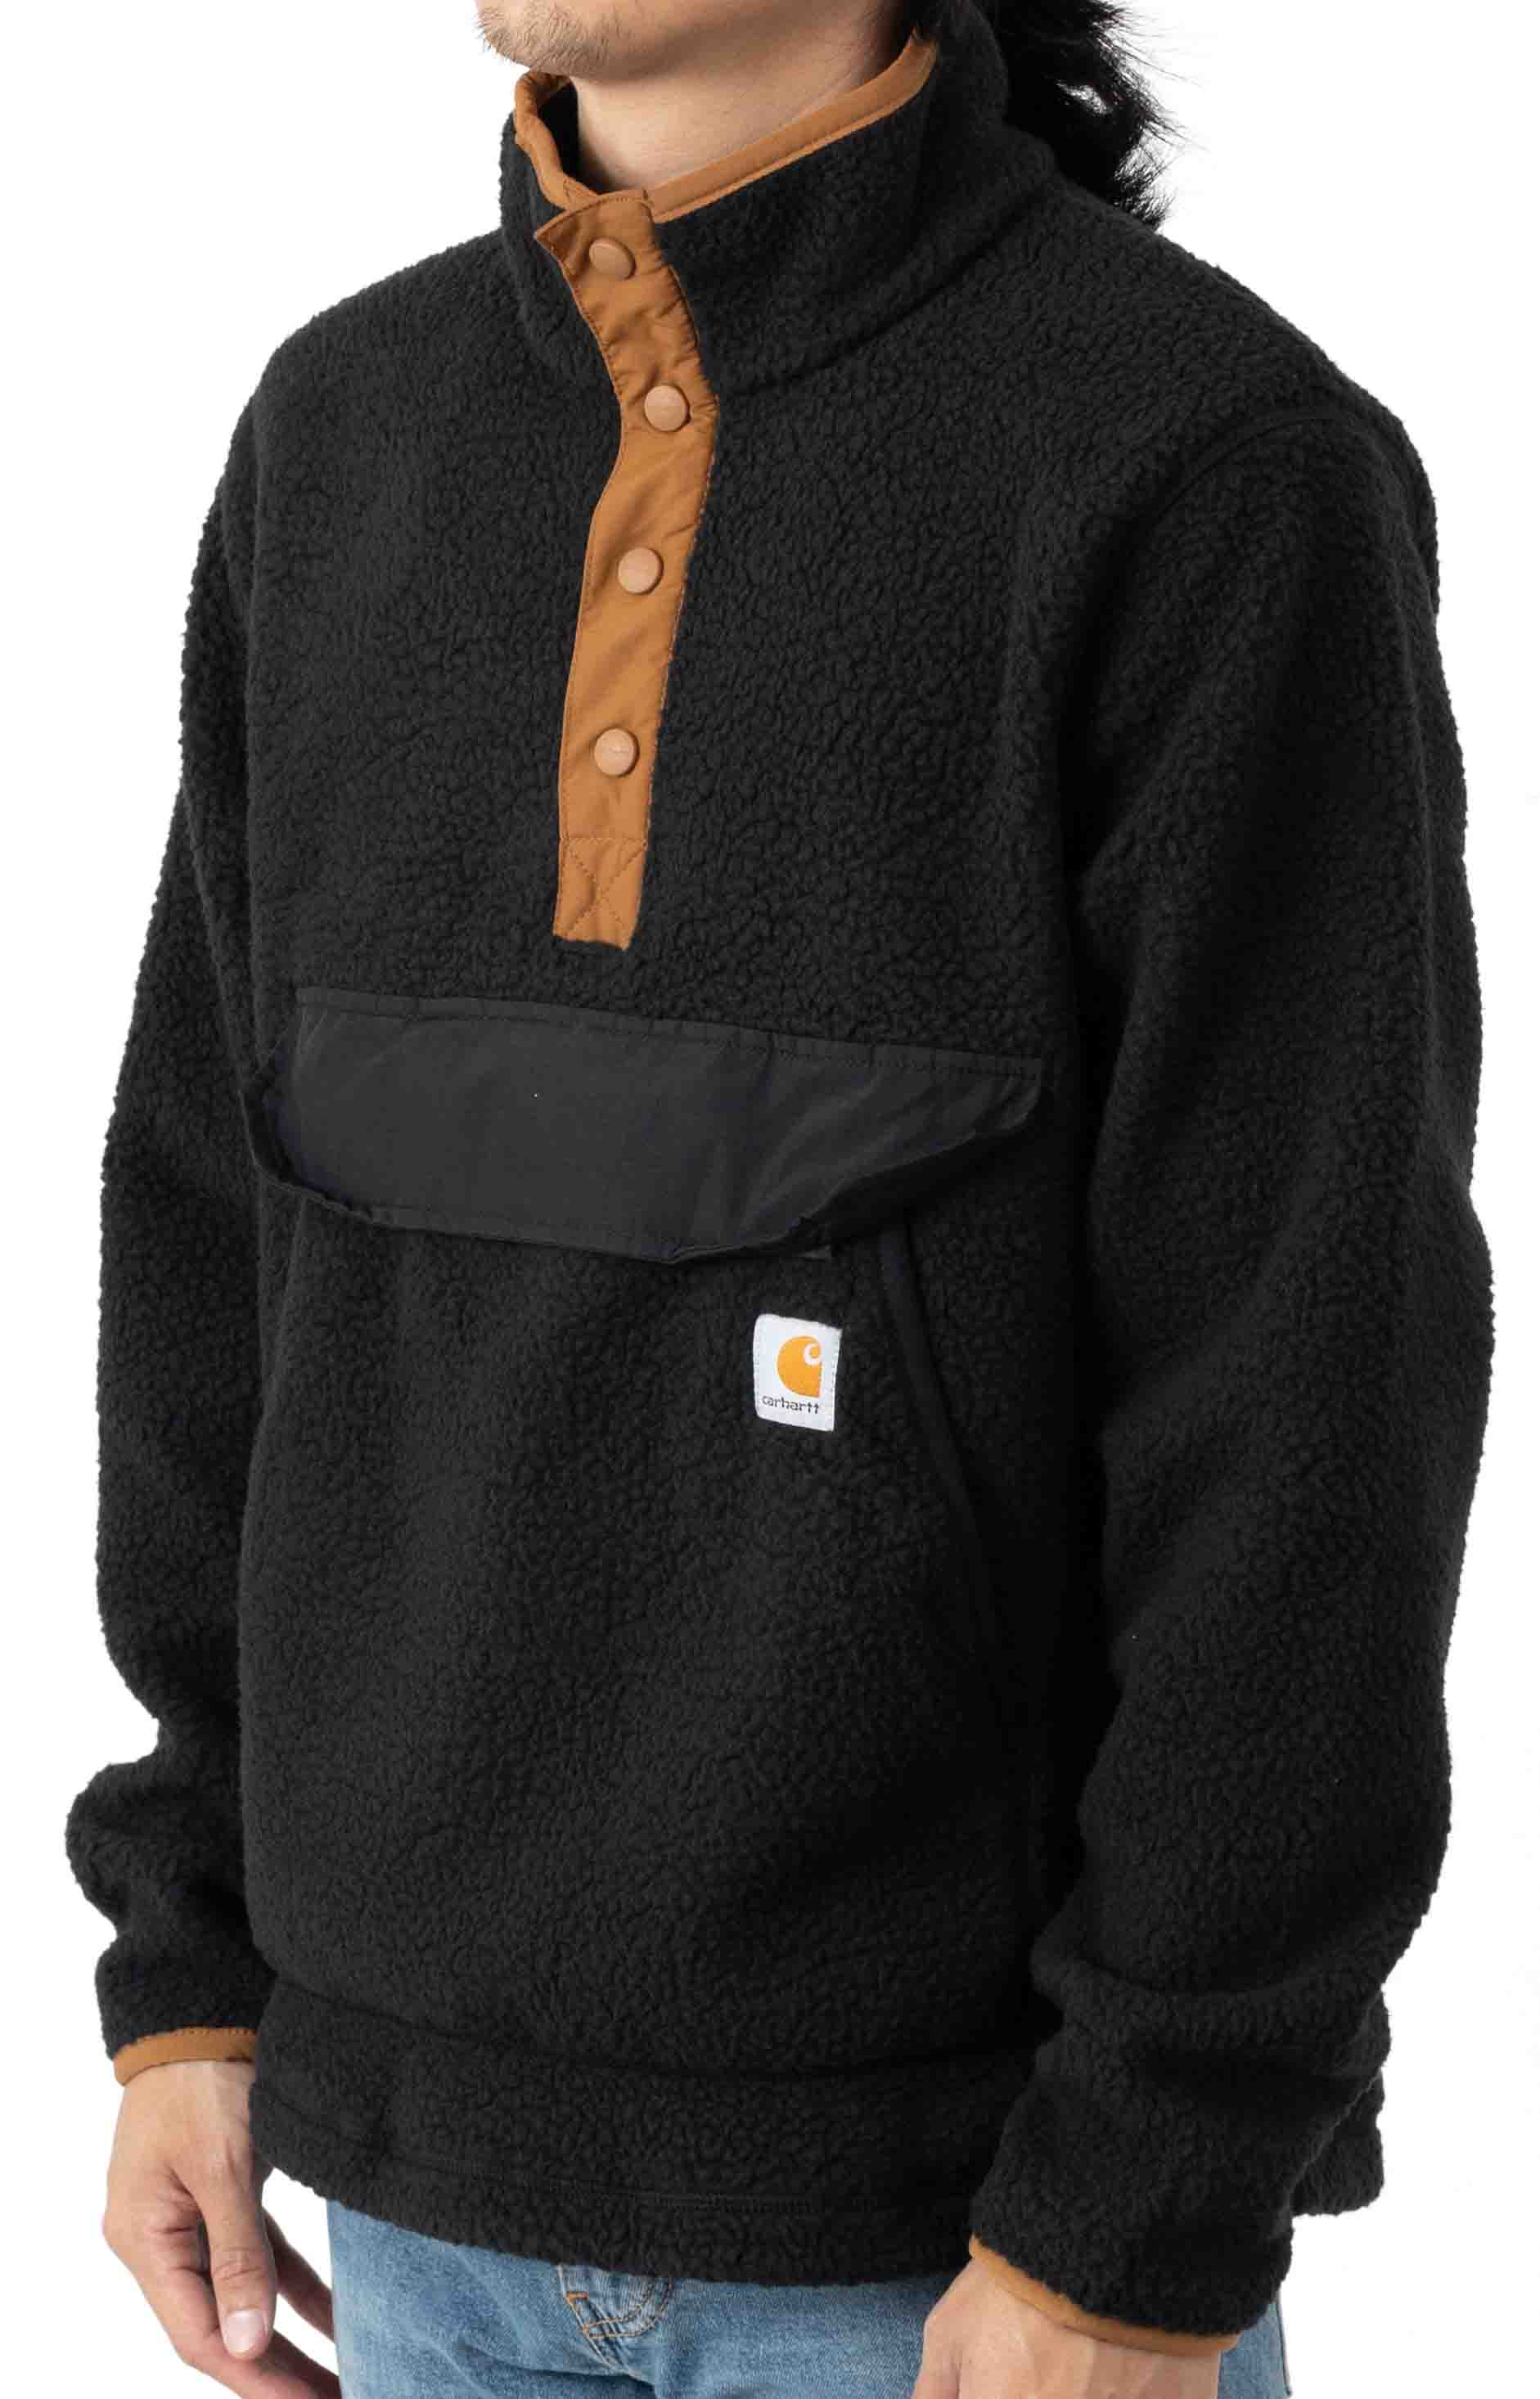 (104991) Relaxed Fit Fleece Snap Front Jacket - Black 2